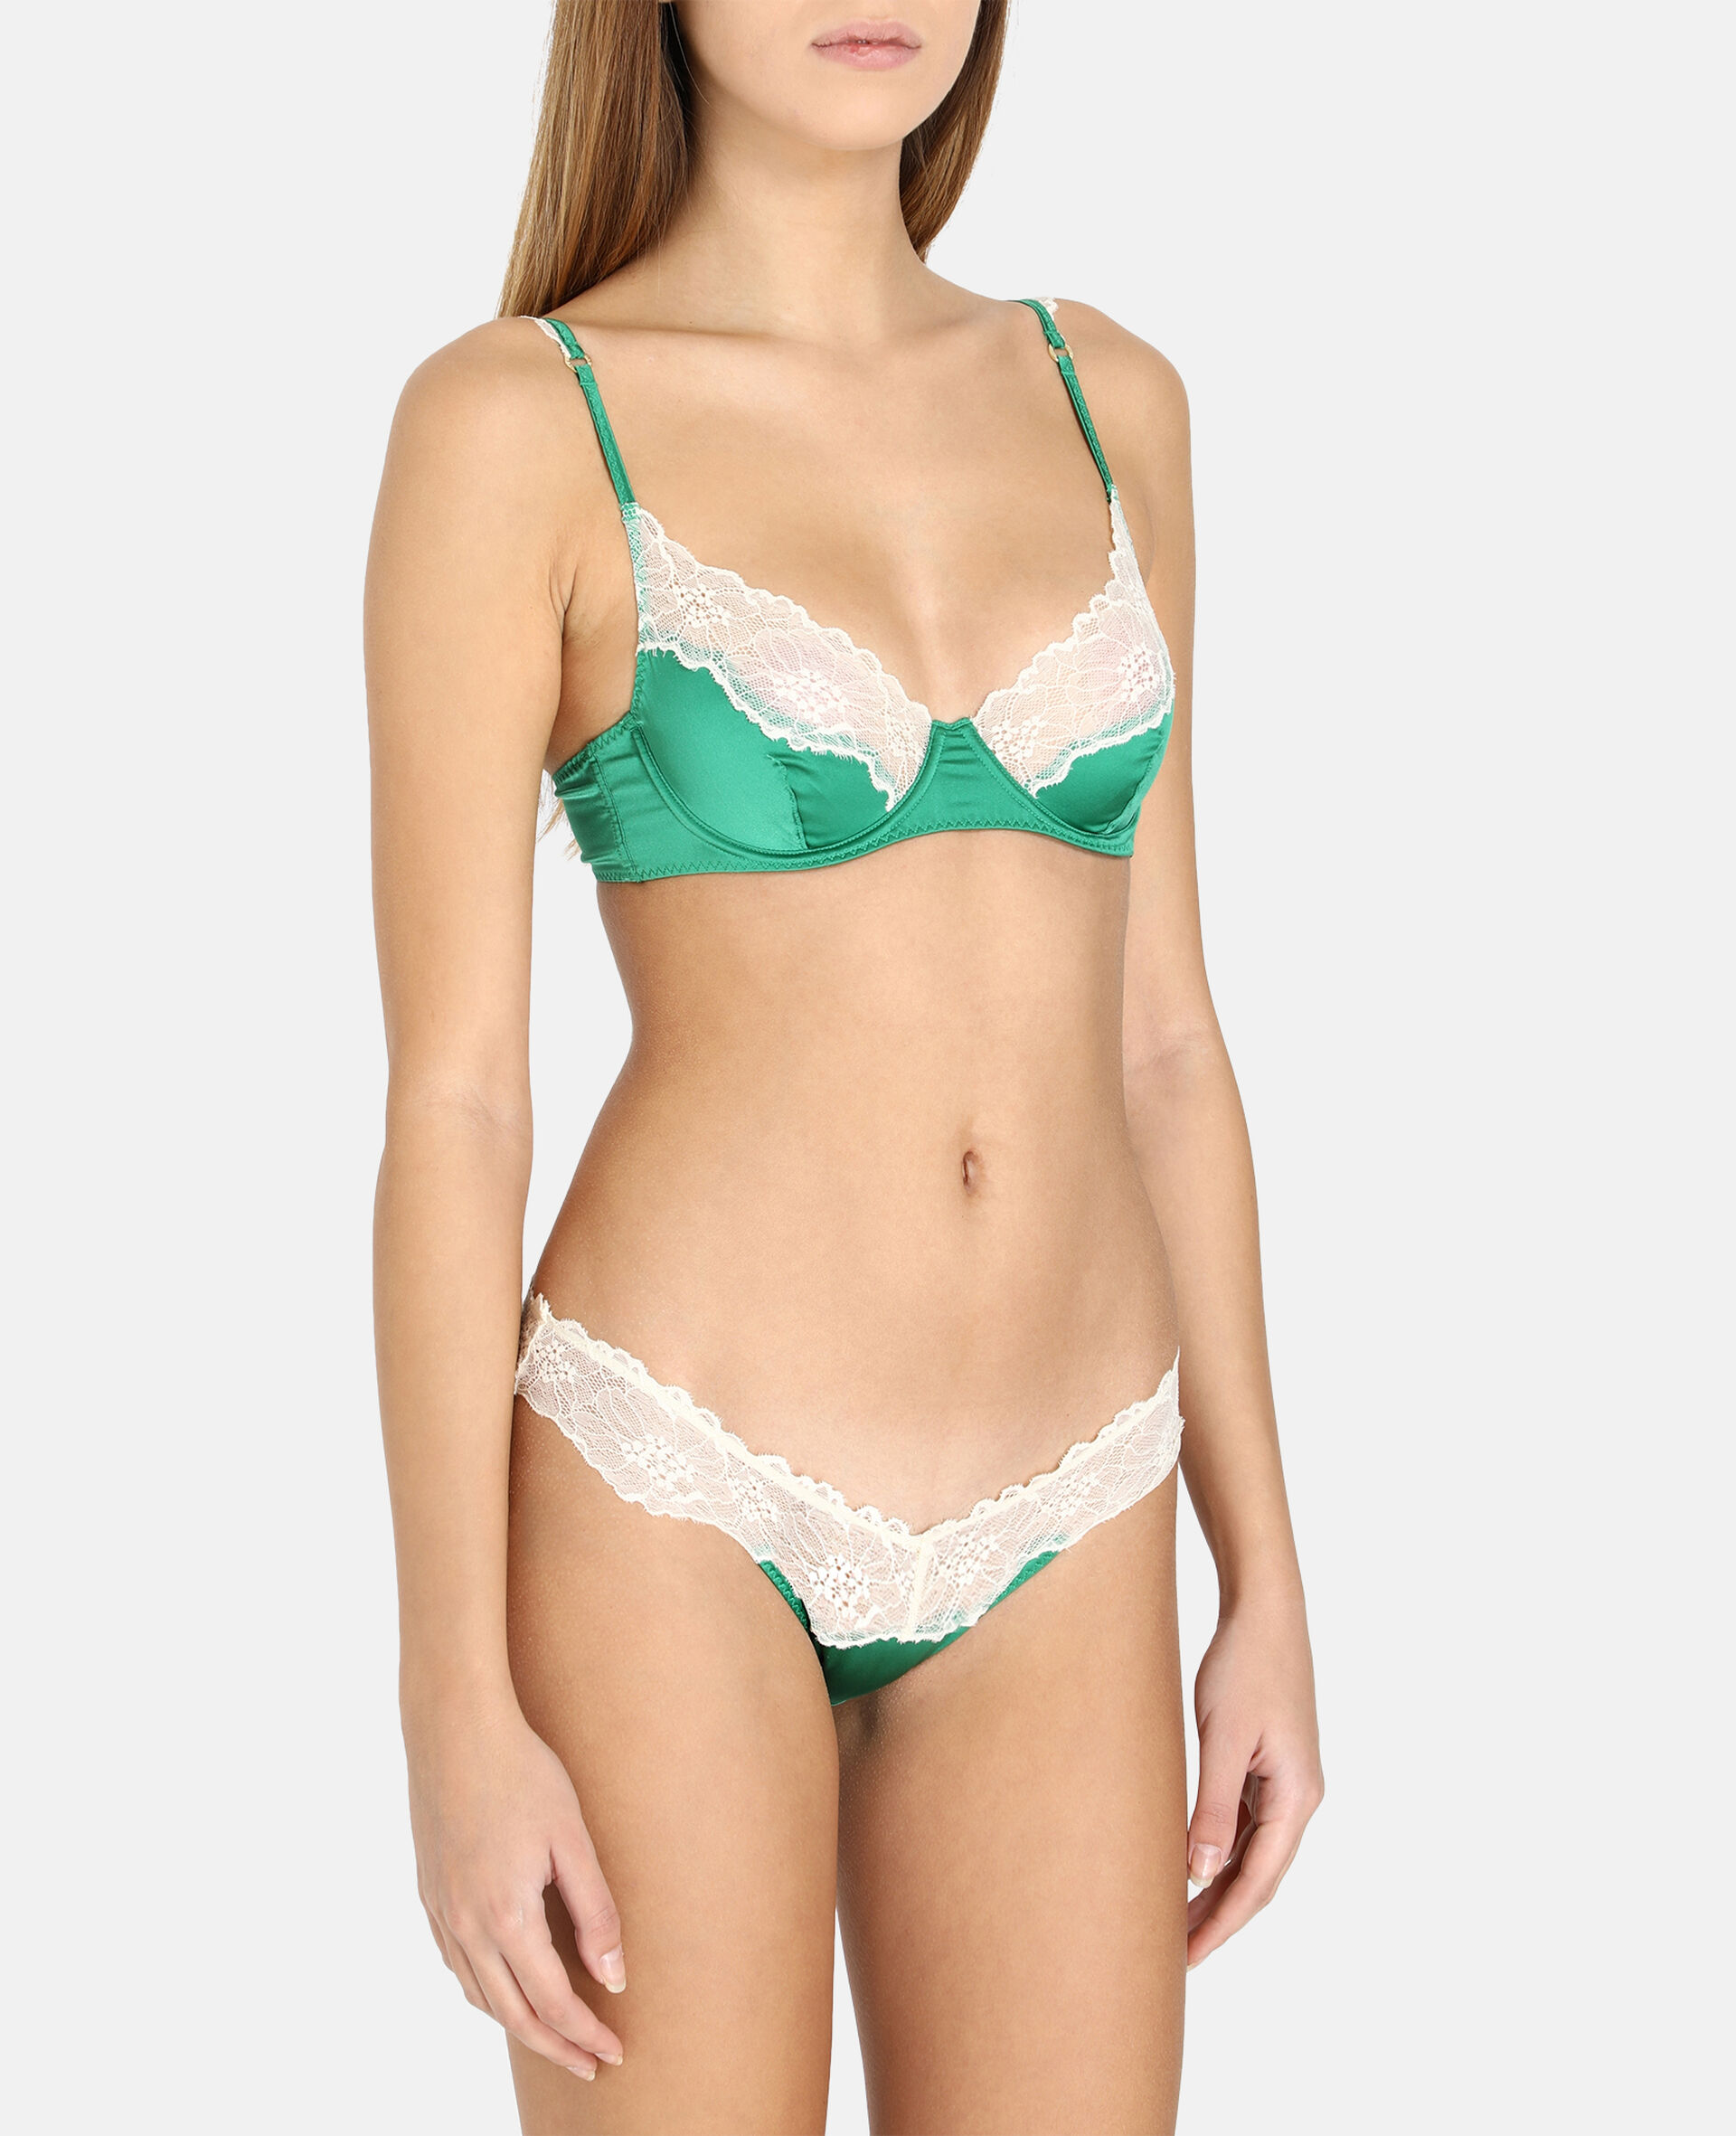 Kitty Chatting Briefs-Green-large image number 1